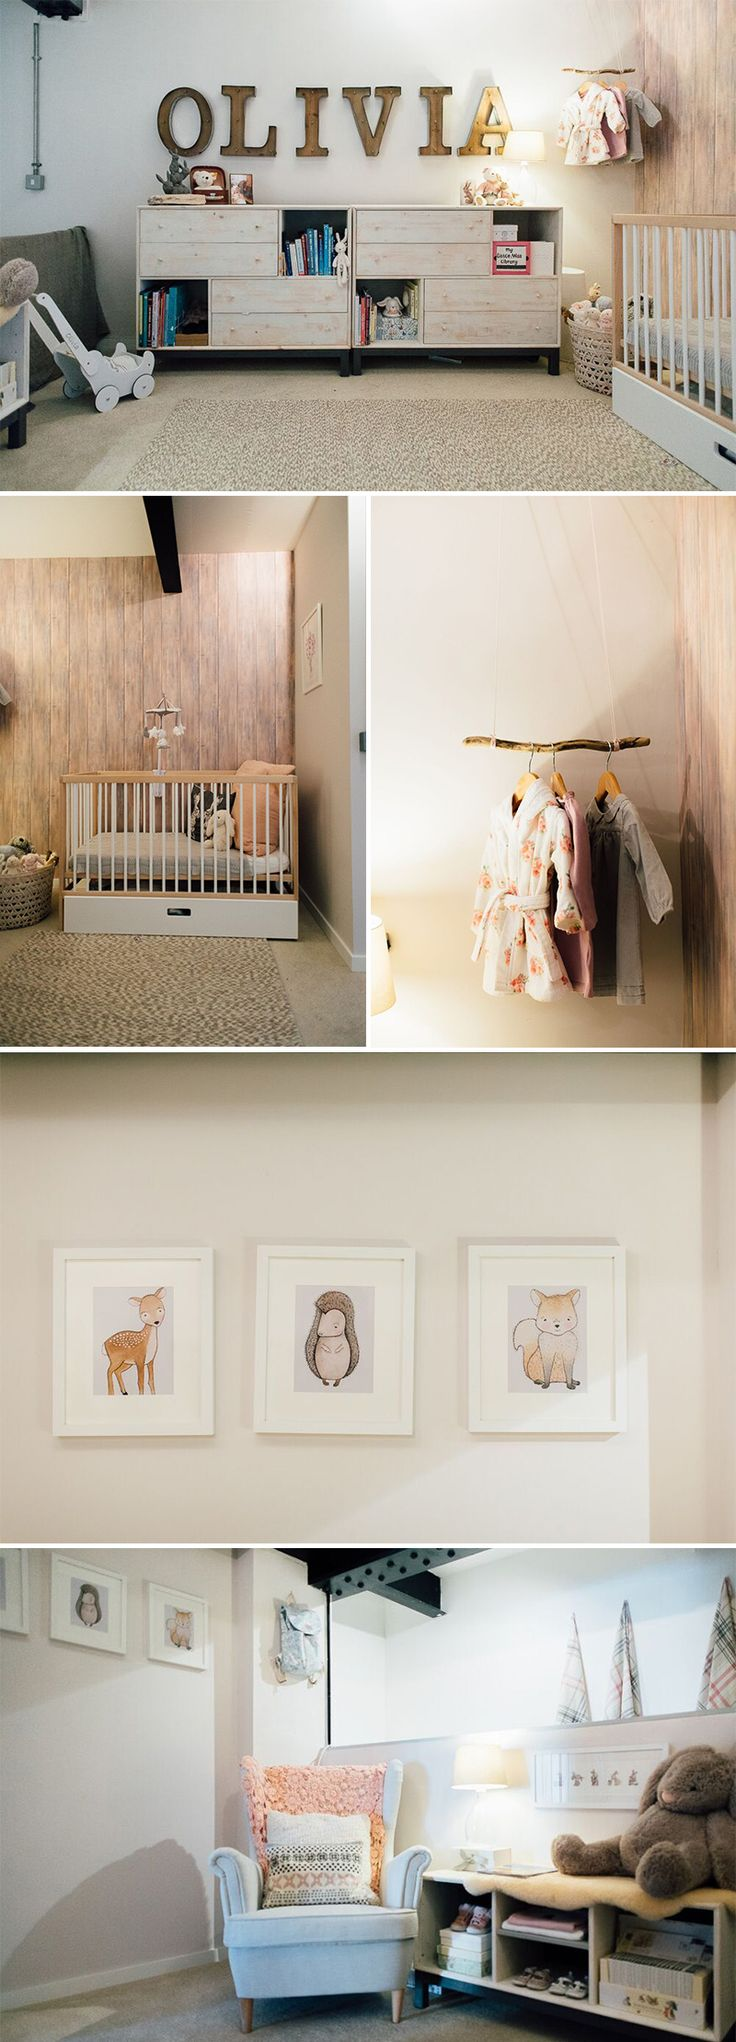 Monochrome and pink nursery in an NYC-style loft apartment